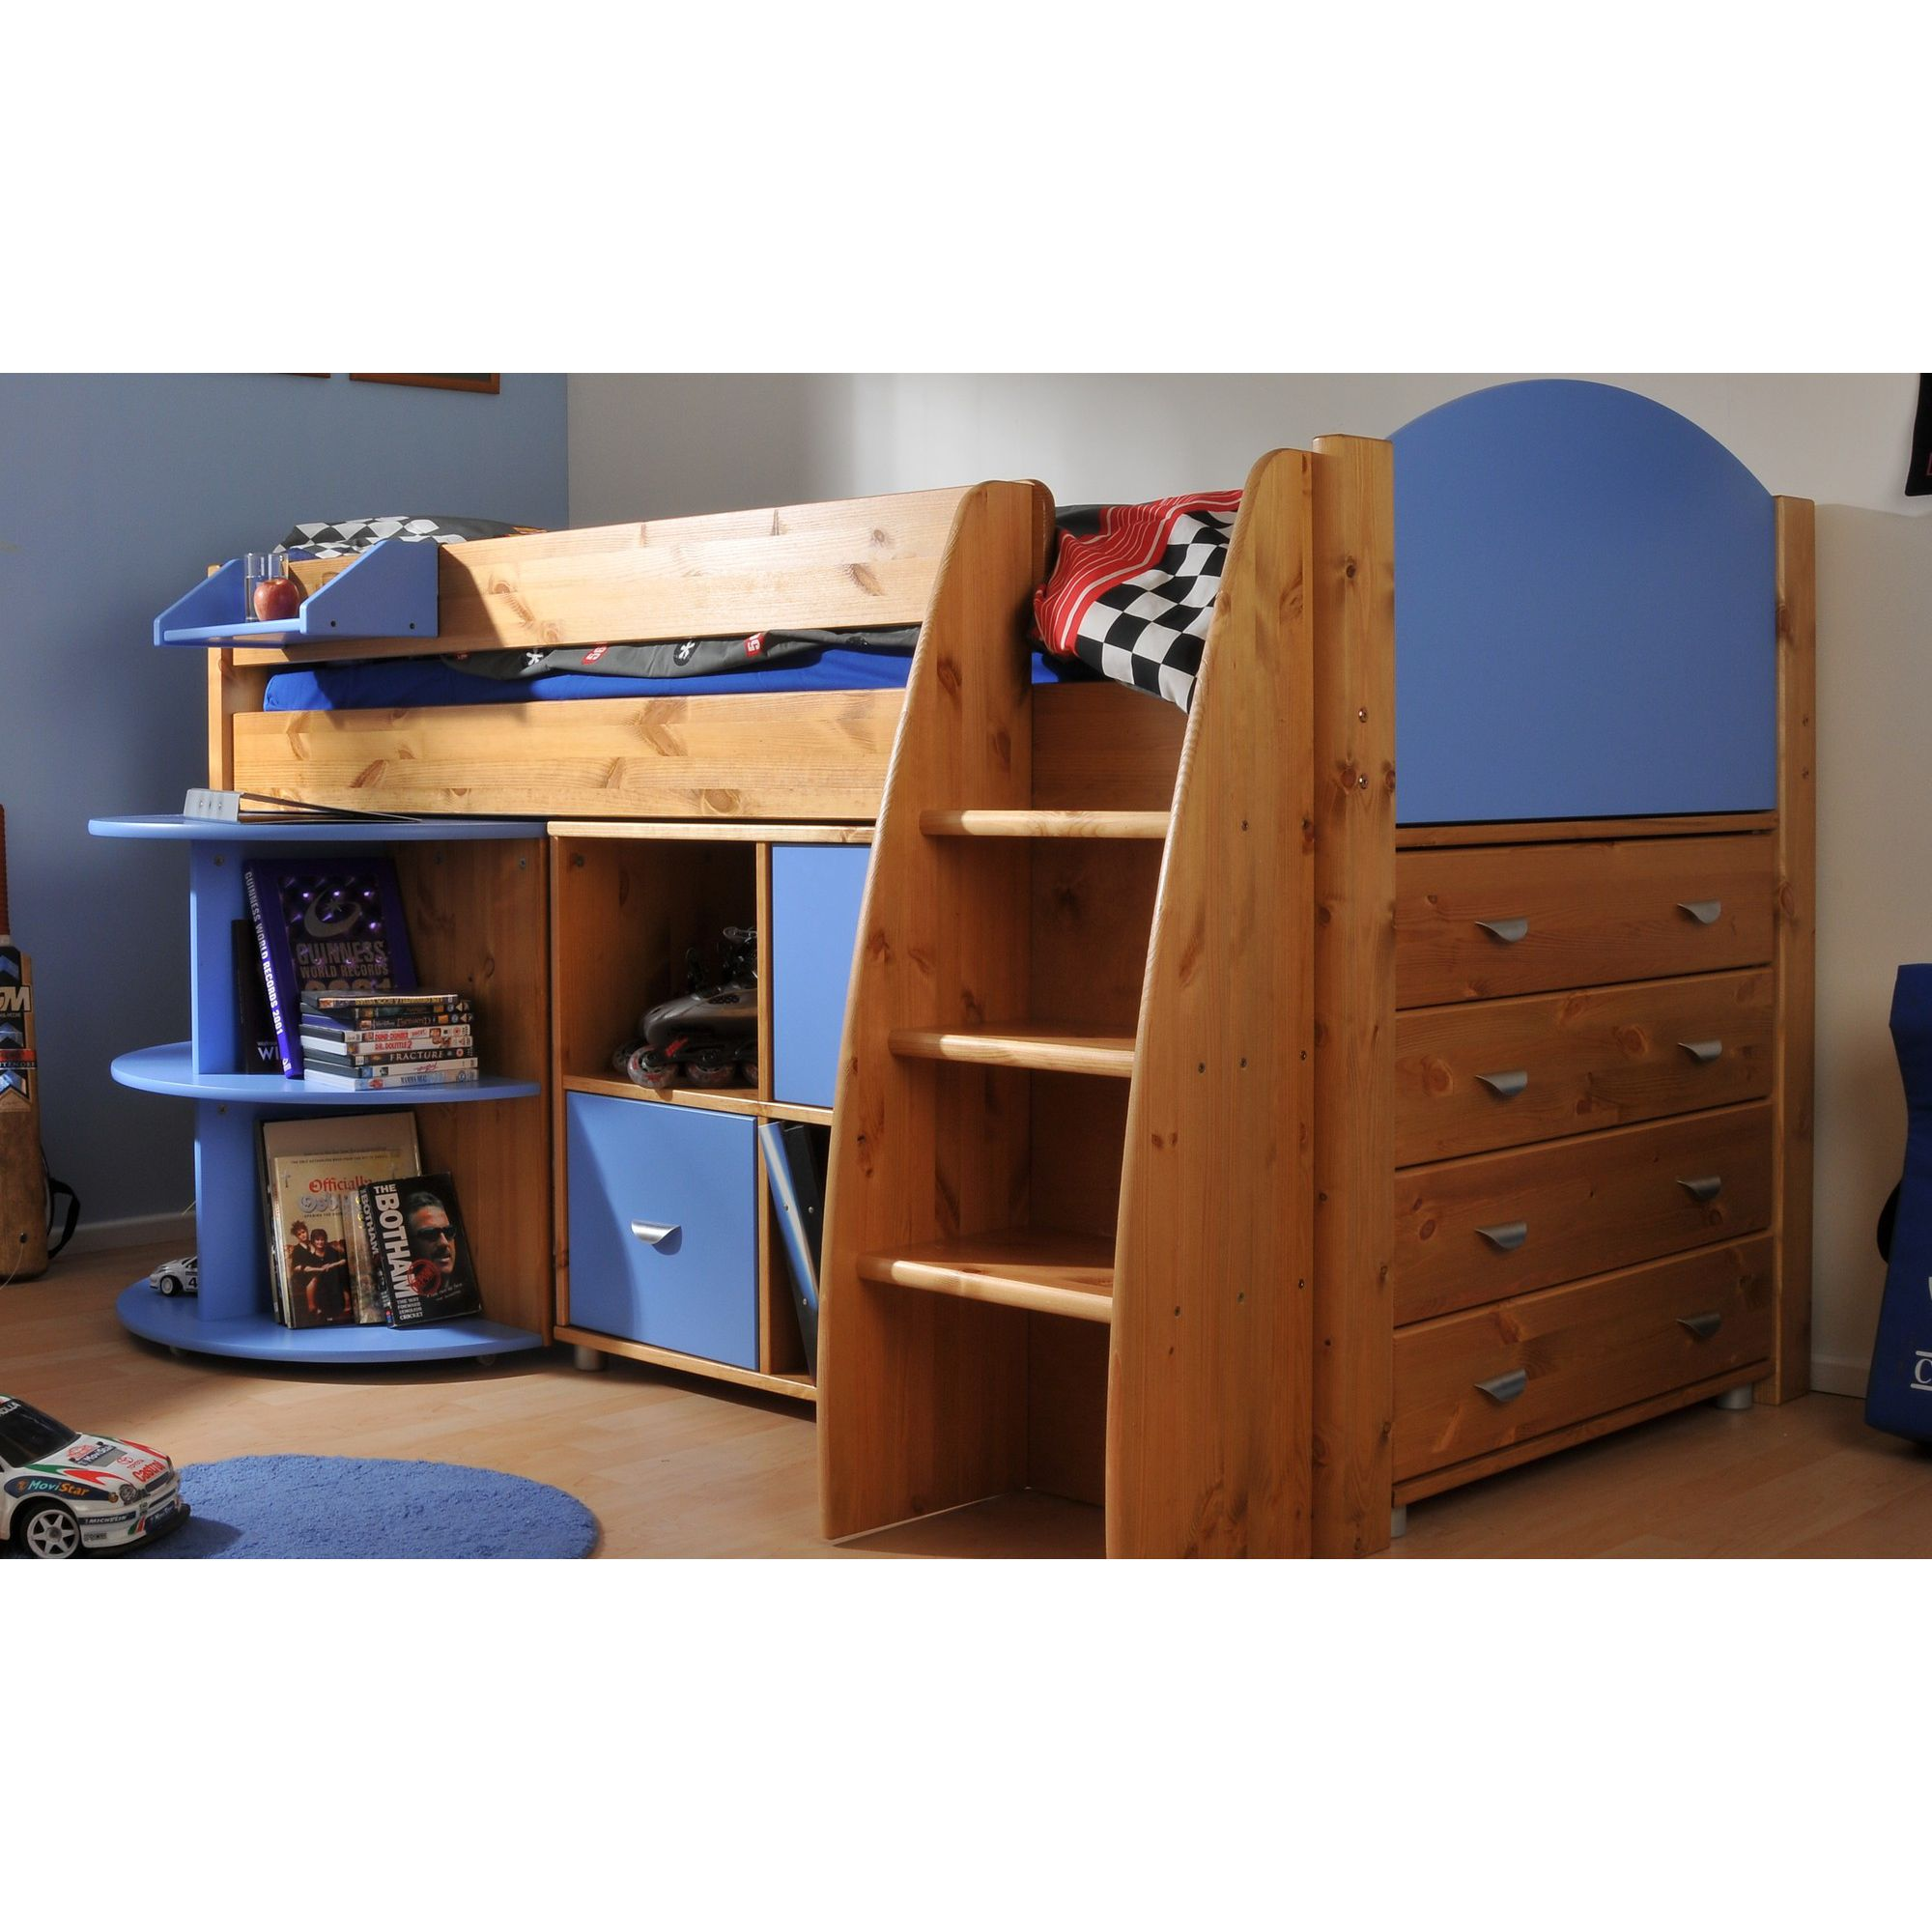 Stompa Rondo Mid Sleeper with 4 Drawer Chest, Cube Unit and Extending Desk - Lilac - White at Tesco Direct